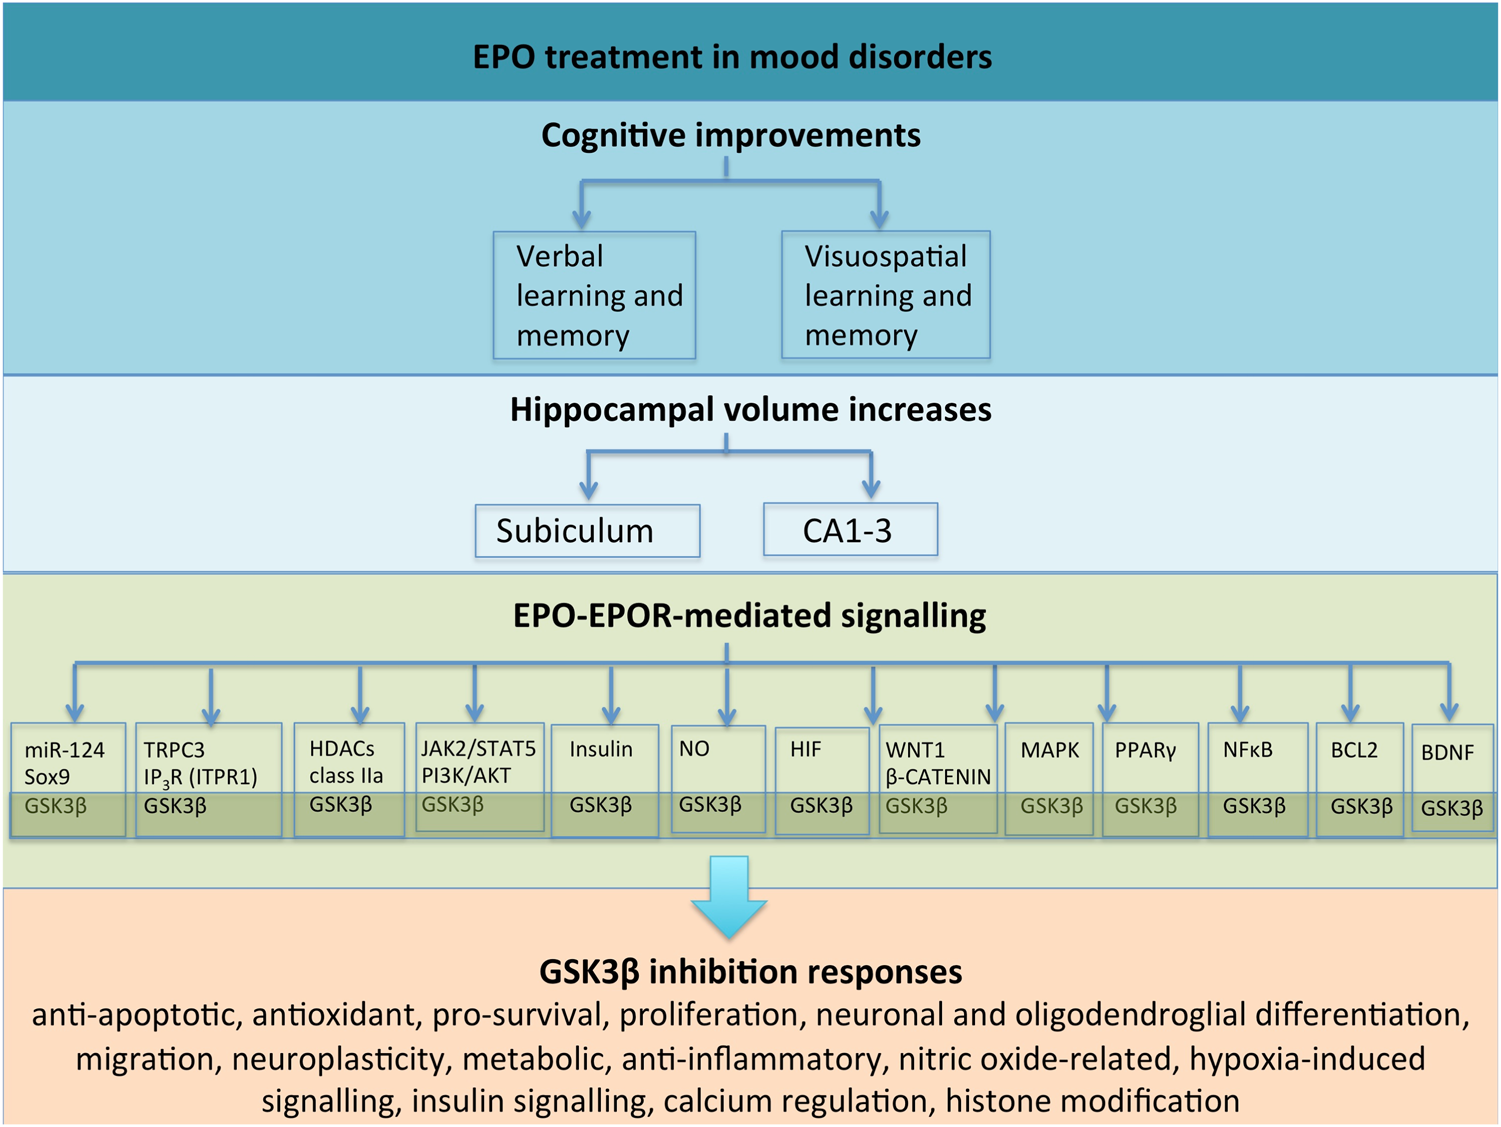 Gsk3 A Plausible Mechanism Of Cognitive And Hippocampal Changes Switching Regulators Using Lm 2575 2577 Induced By Erythropoietin Treatment In Mood Disorders Translational Psychiatry